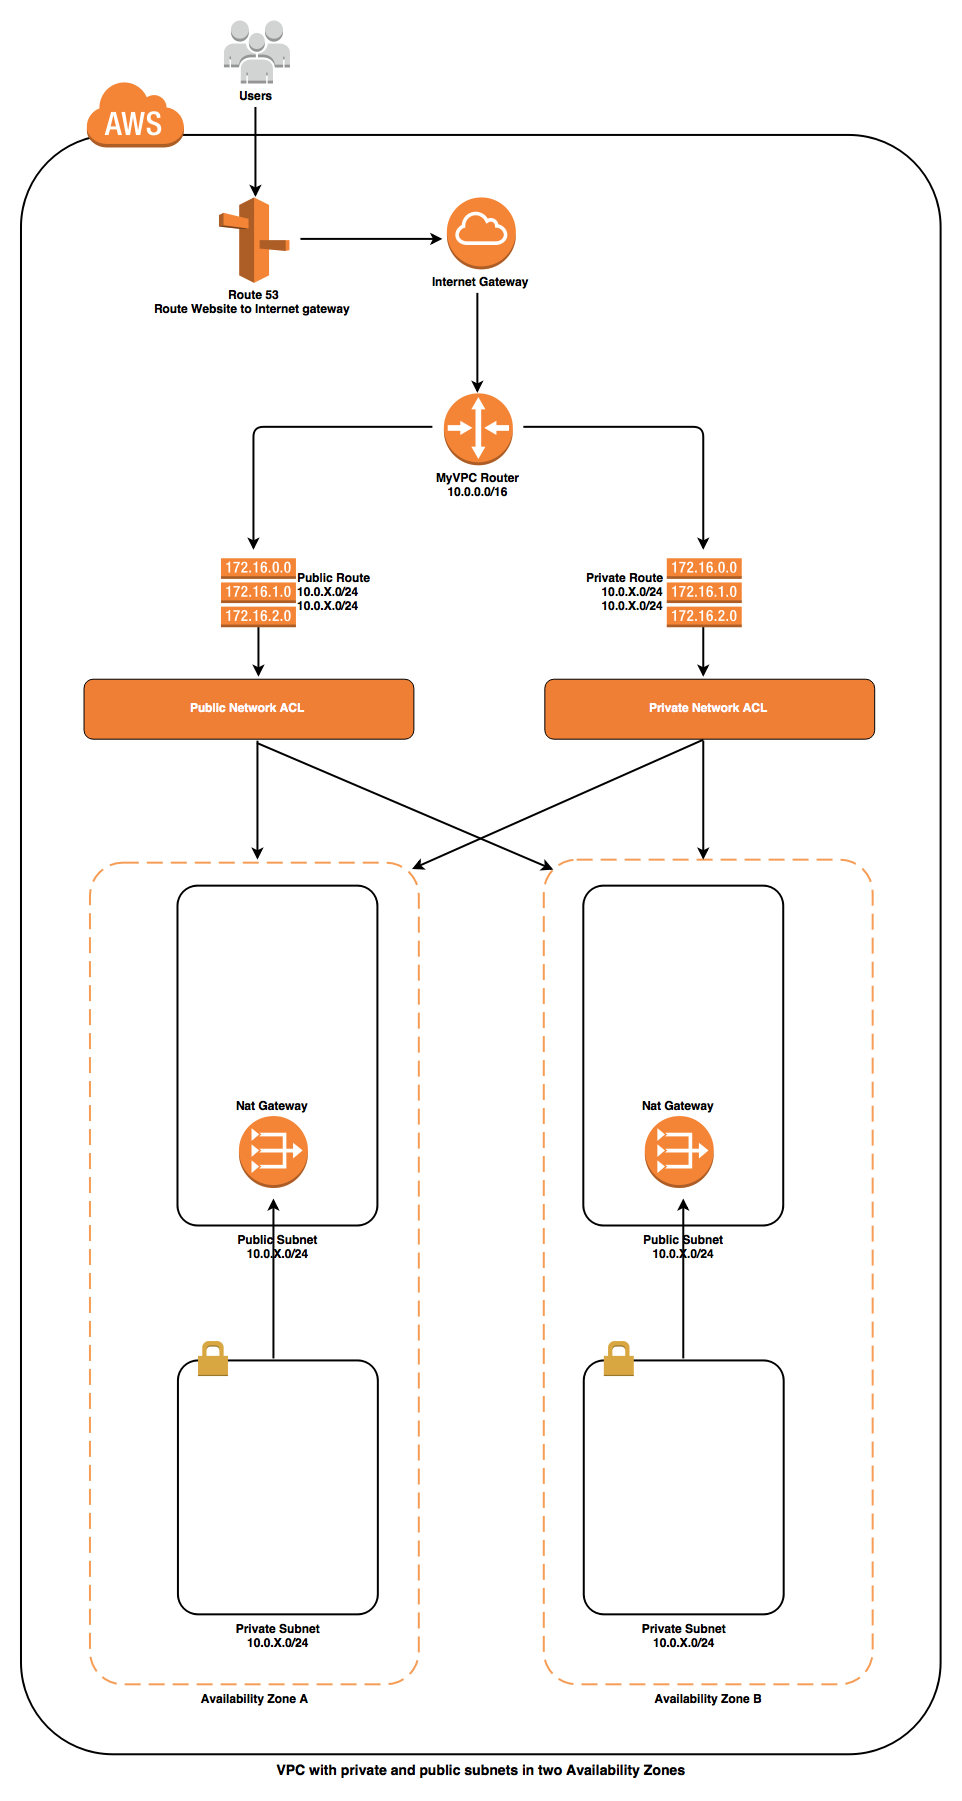 vpc-infrastructure-overview